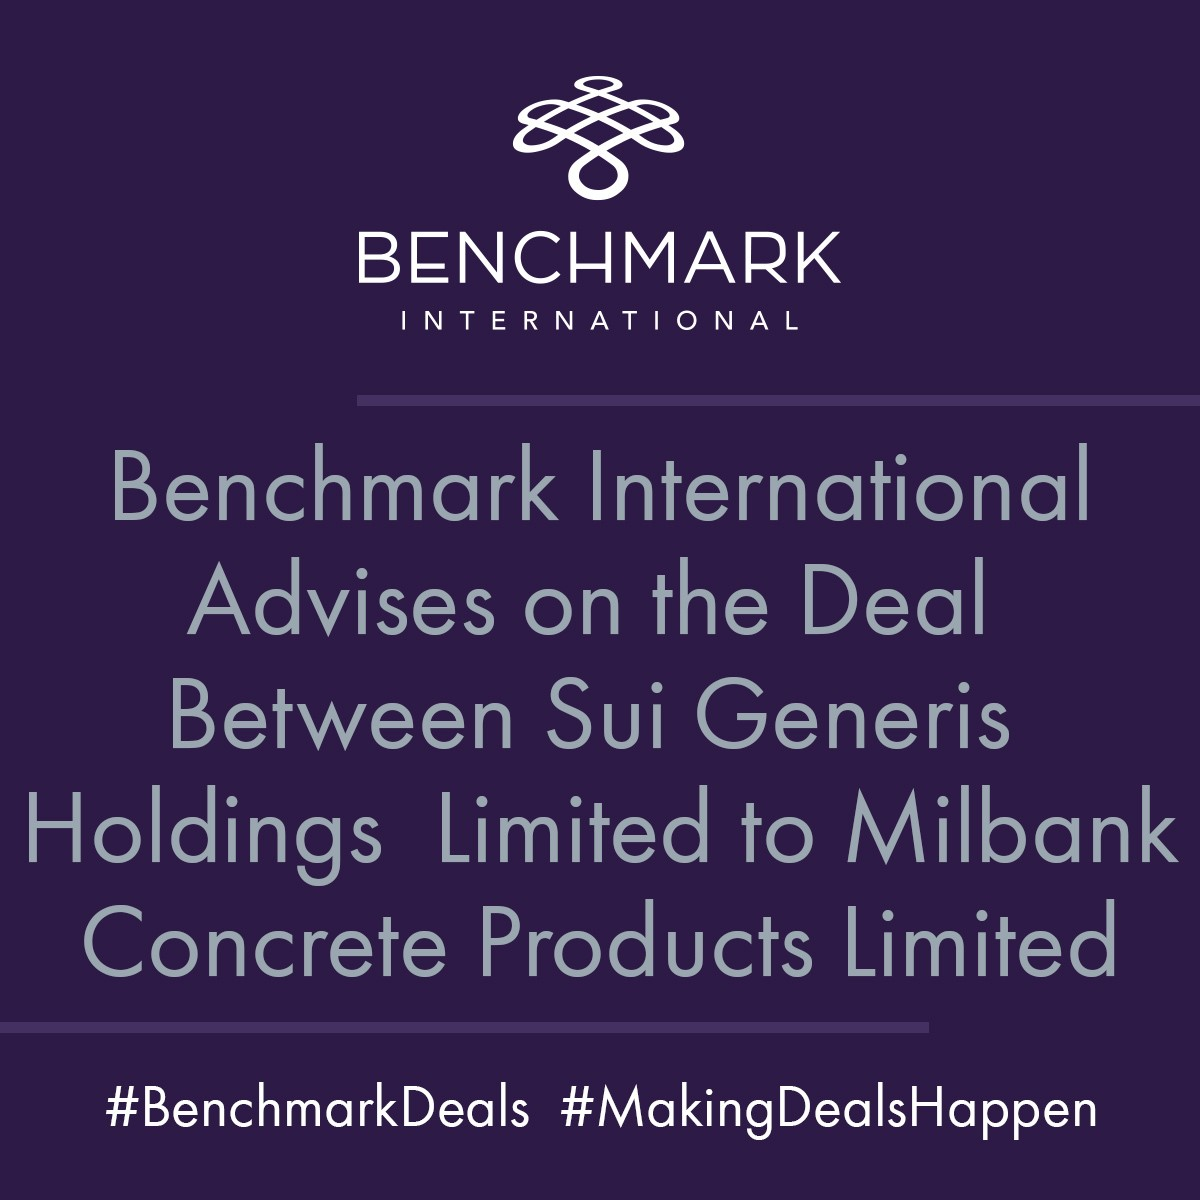 Benchmark International Advises on the deal between Sui Generis Holdings Limited to Milbank Concrete Products Limited